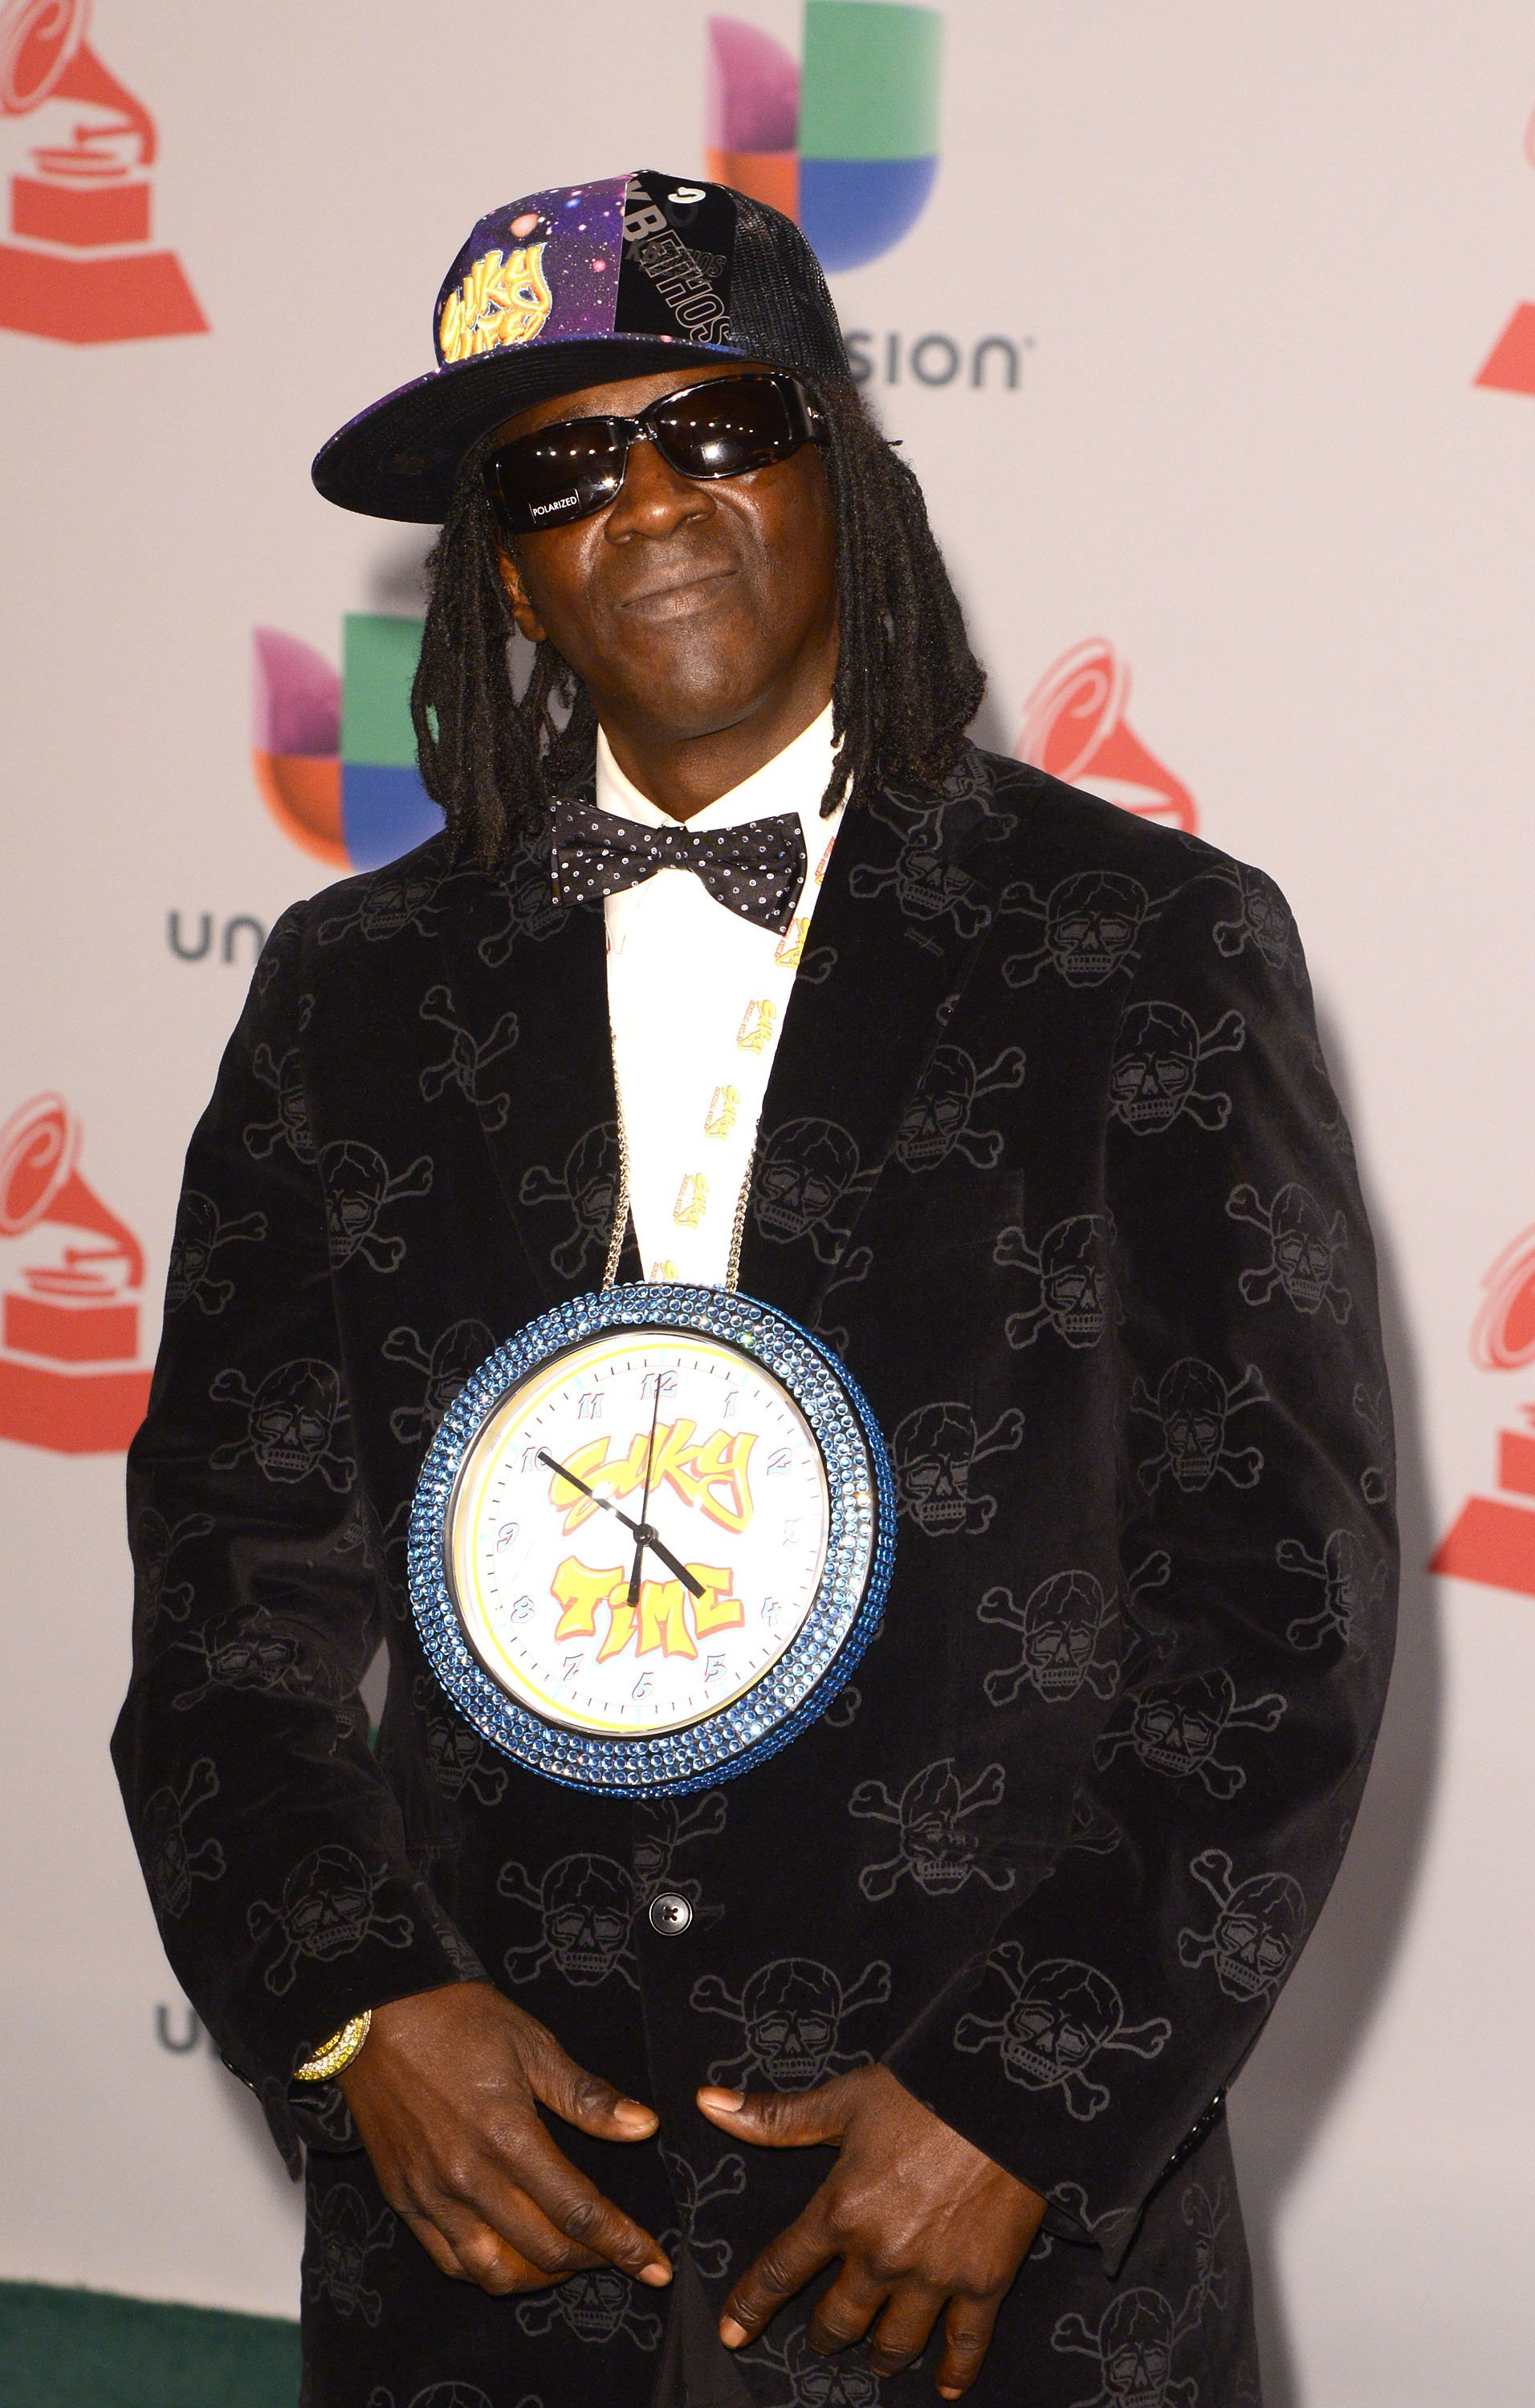 Flavor Flav at the 15th Annual Latin Grammy Awards in 2014. | Photo: Getty Images